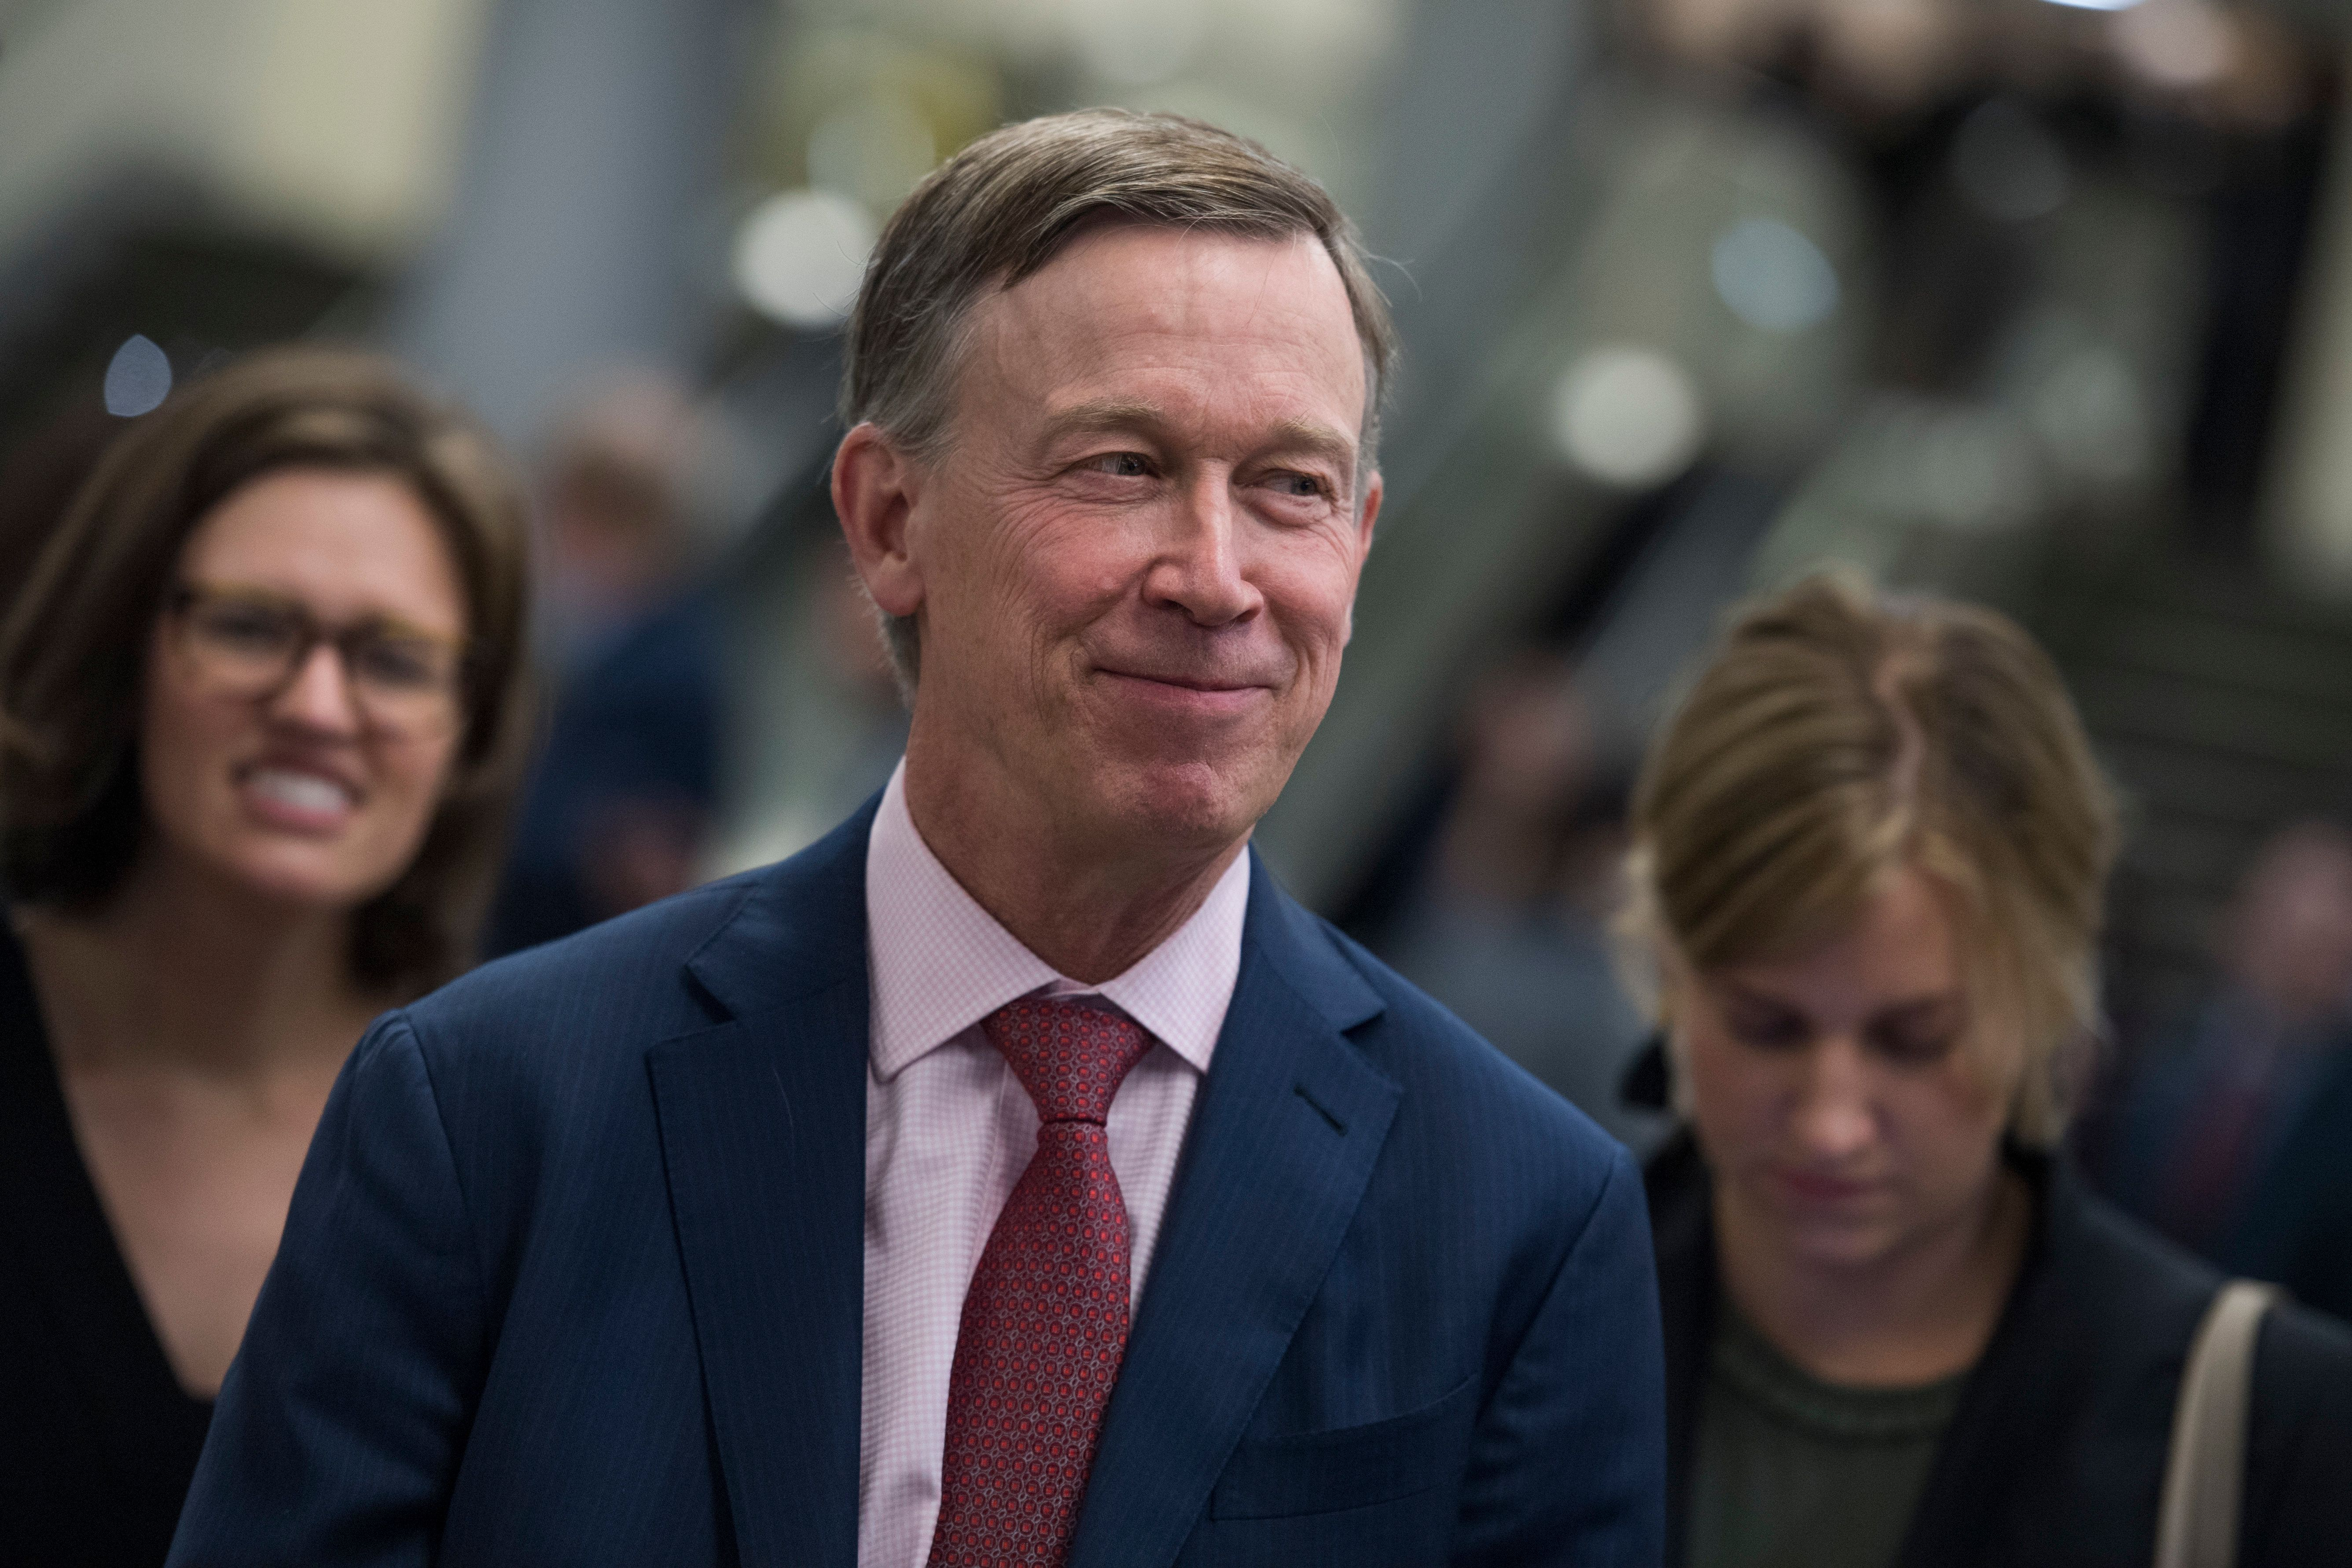 UNITED STATES - SEPTEMBER 07: Gov. John Hickenlooper, D-Colo., is seen in the senate subway in the Capitol on September 7, 2017. (Photo By Tom Williams/CQ Roll Call)